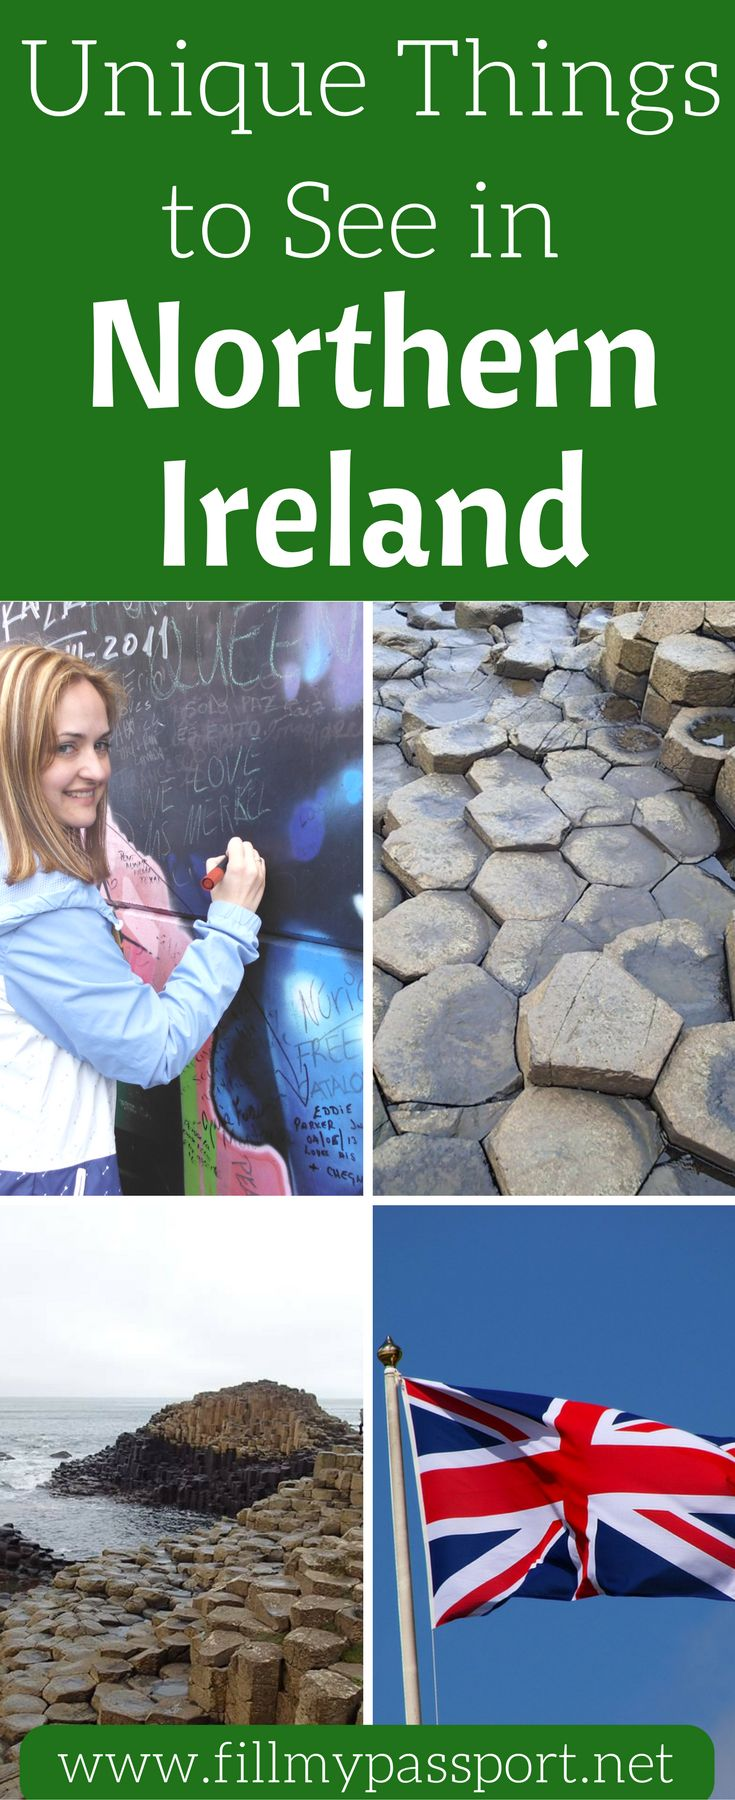 If you get the chance to visit Northern Ireland, GO! We love all of the history and culture of Northern Ireland and think you will too. You can visit the Titanic museum, learn about the most bombed hotel in Europe, and much more. Come see what things you should see in Northern Ireland and don't forget to save this pin to your travel board.